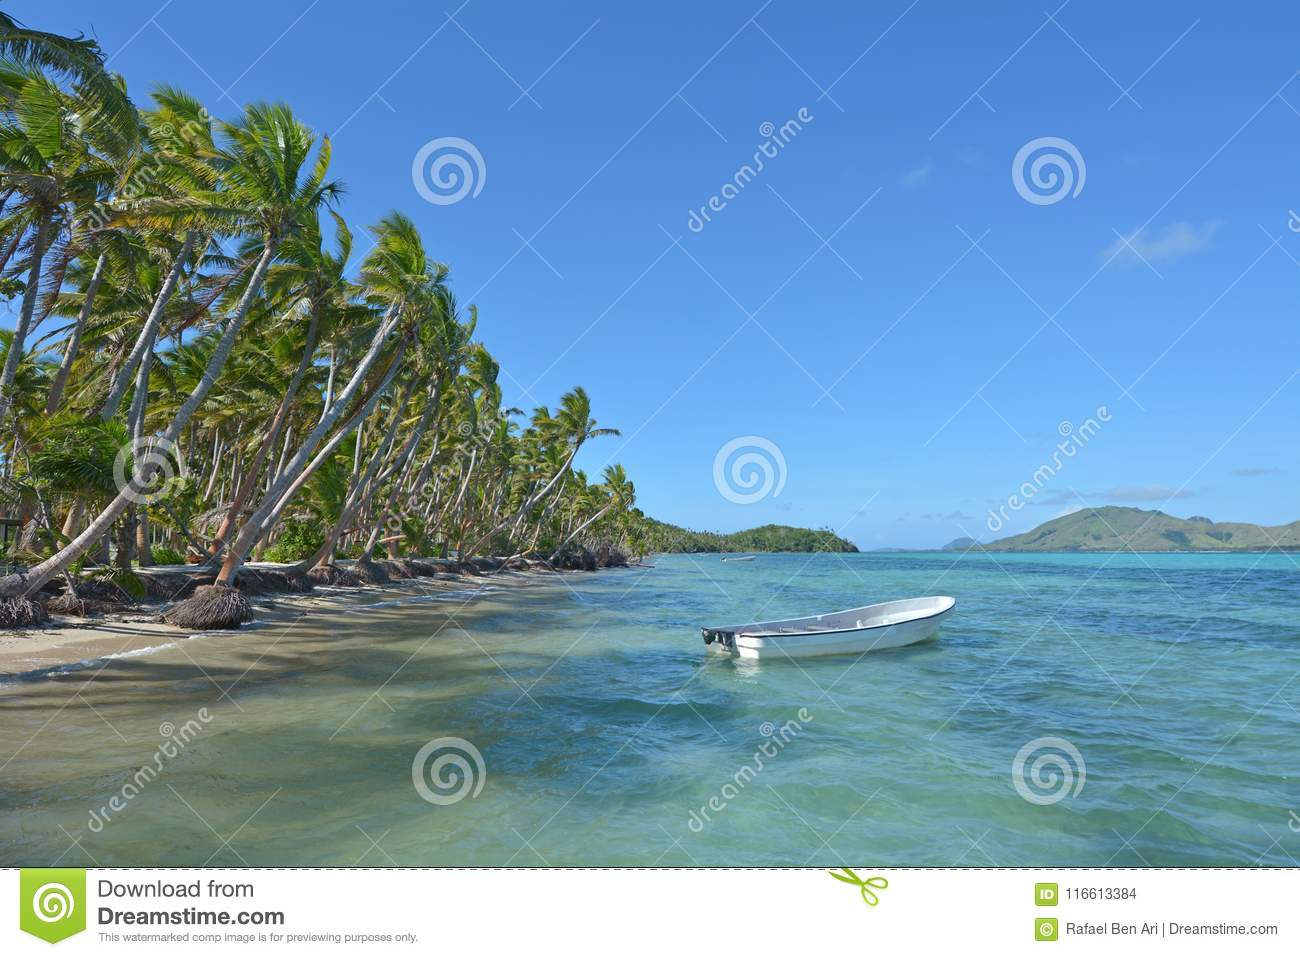 Download White Fishing Boat On A Tropical Island Fiji Stock Photo Image Of Leisure